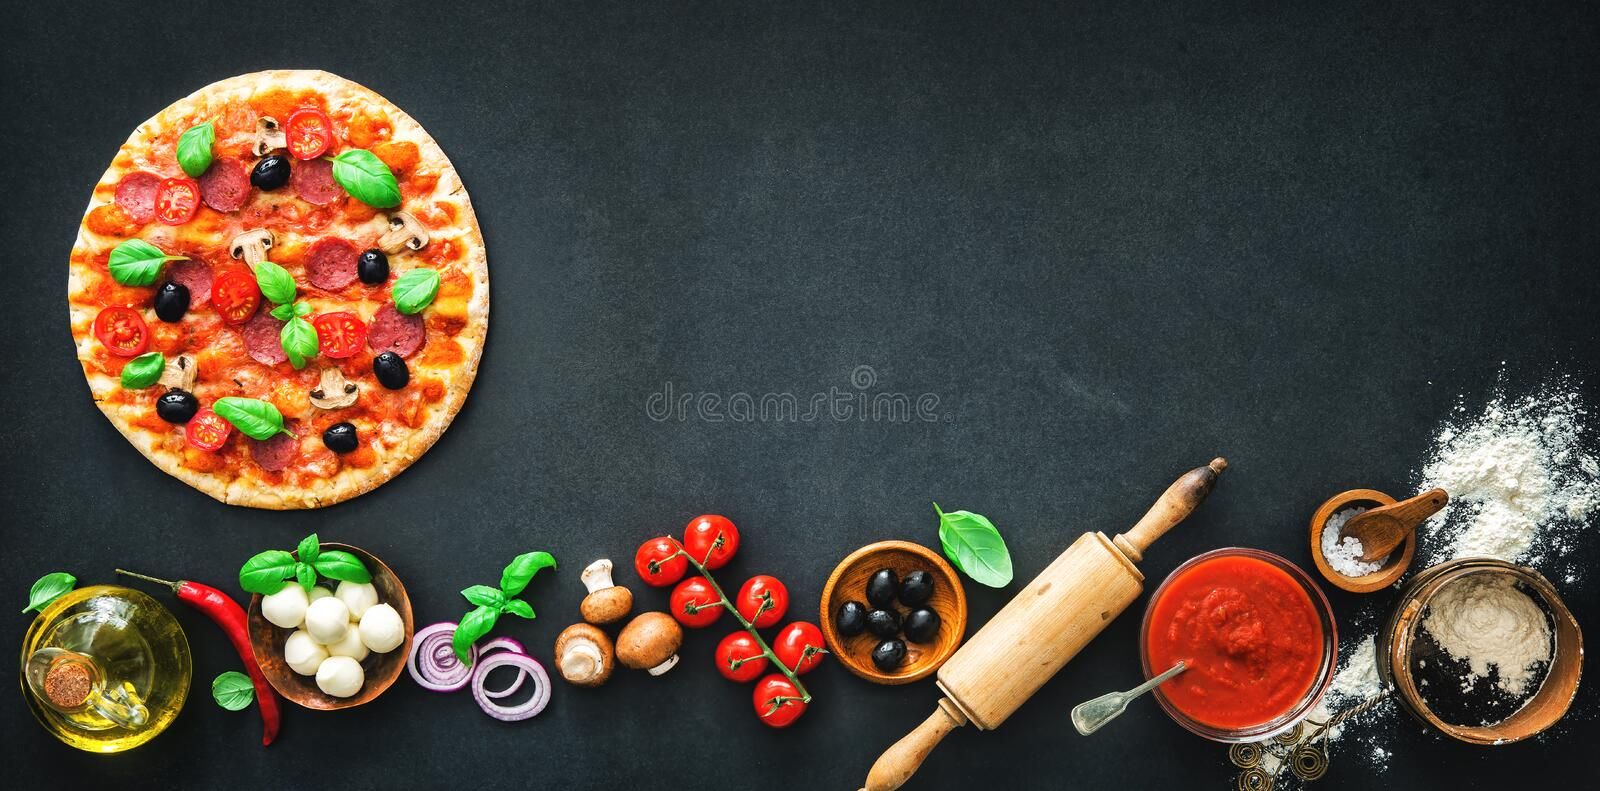 Download Delicious Pizza With Ingredients And Spices Stock Photo - Image of mediterranean, meal: 110758060